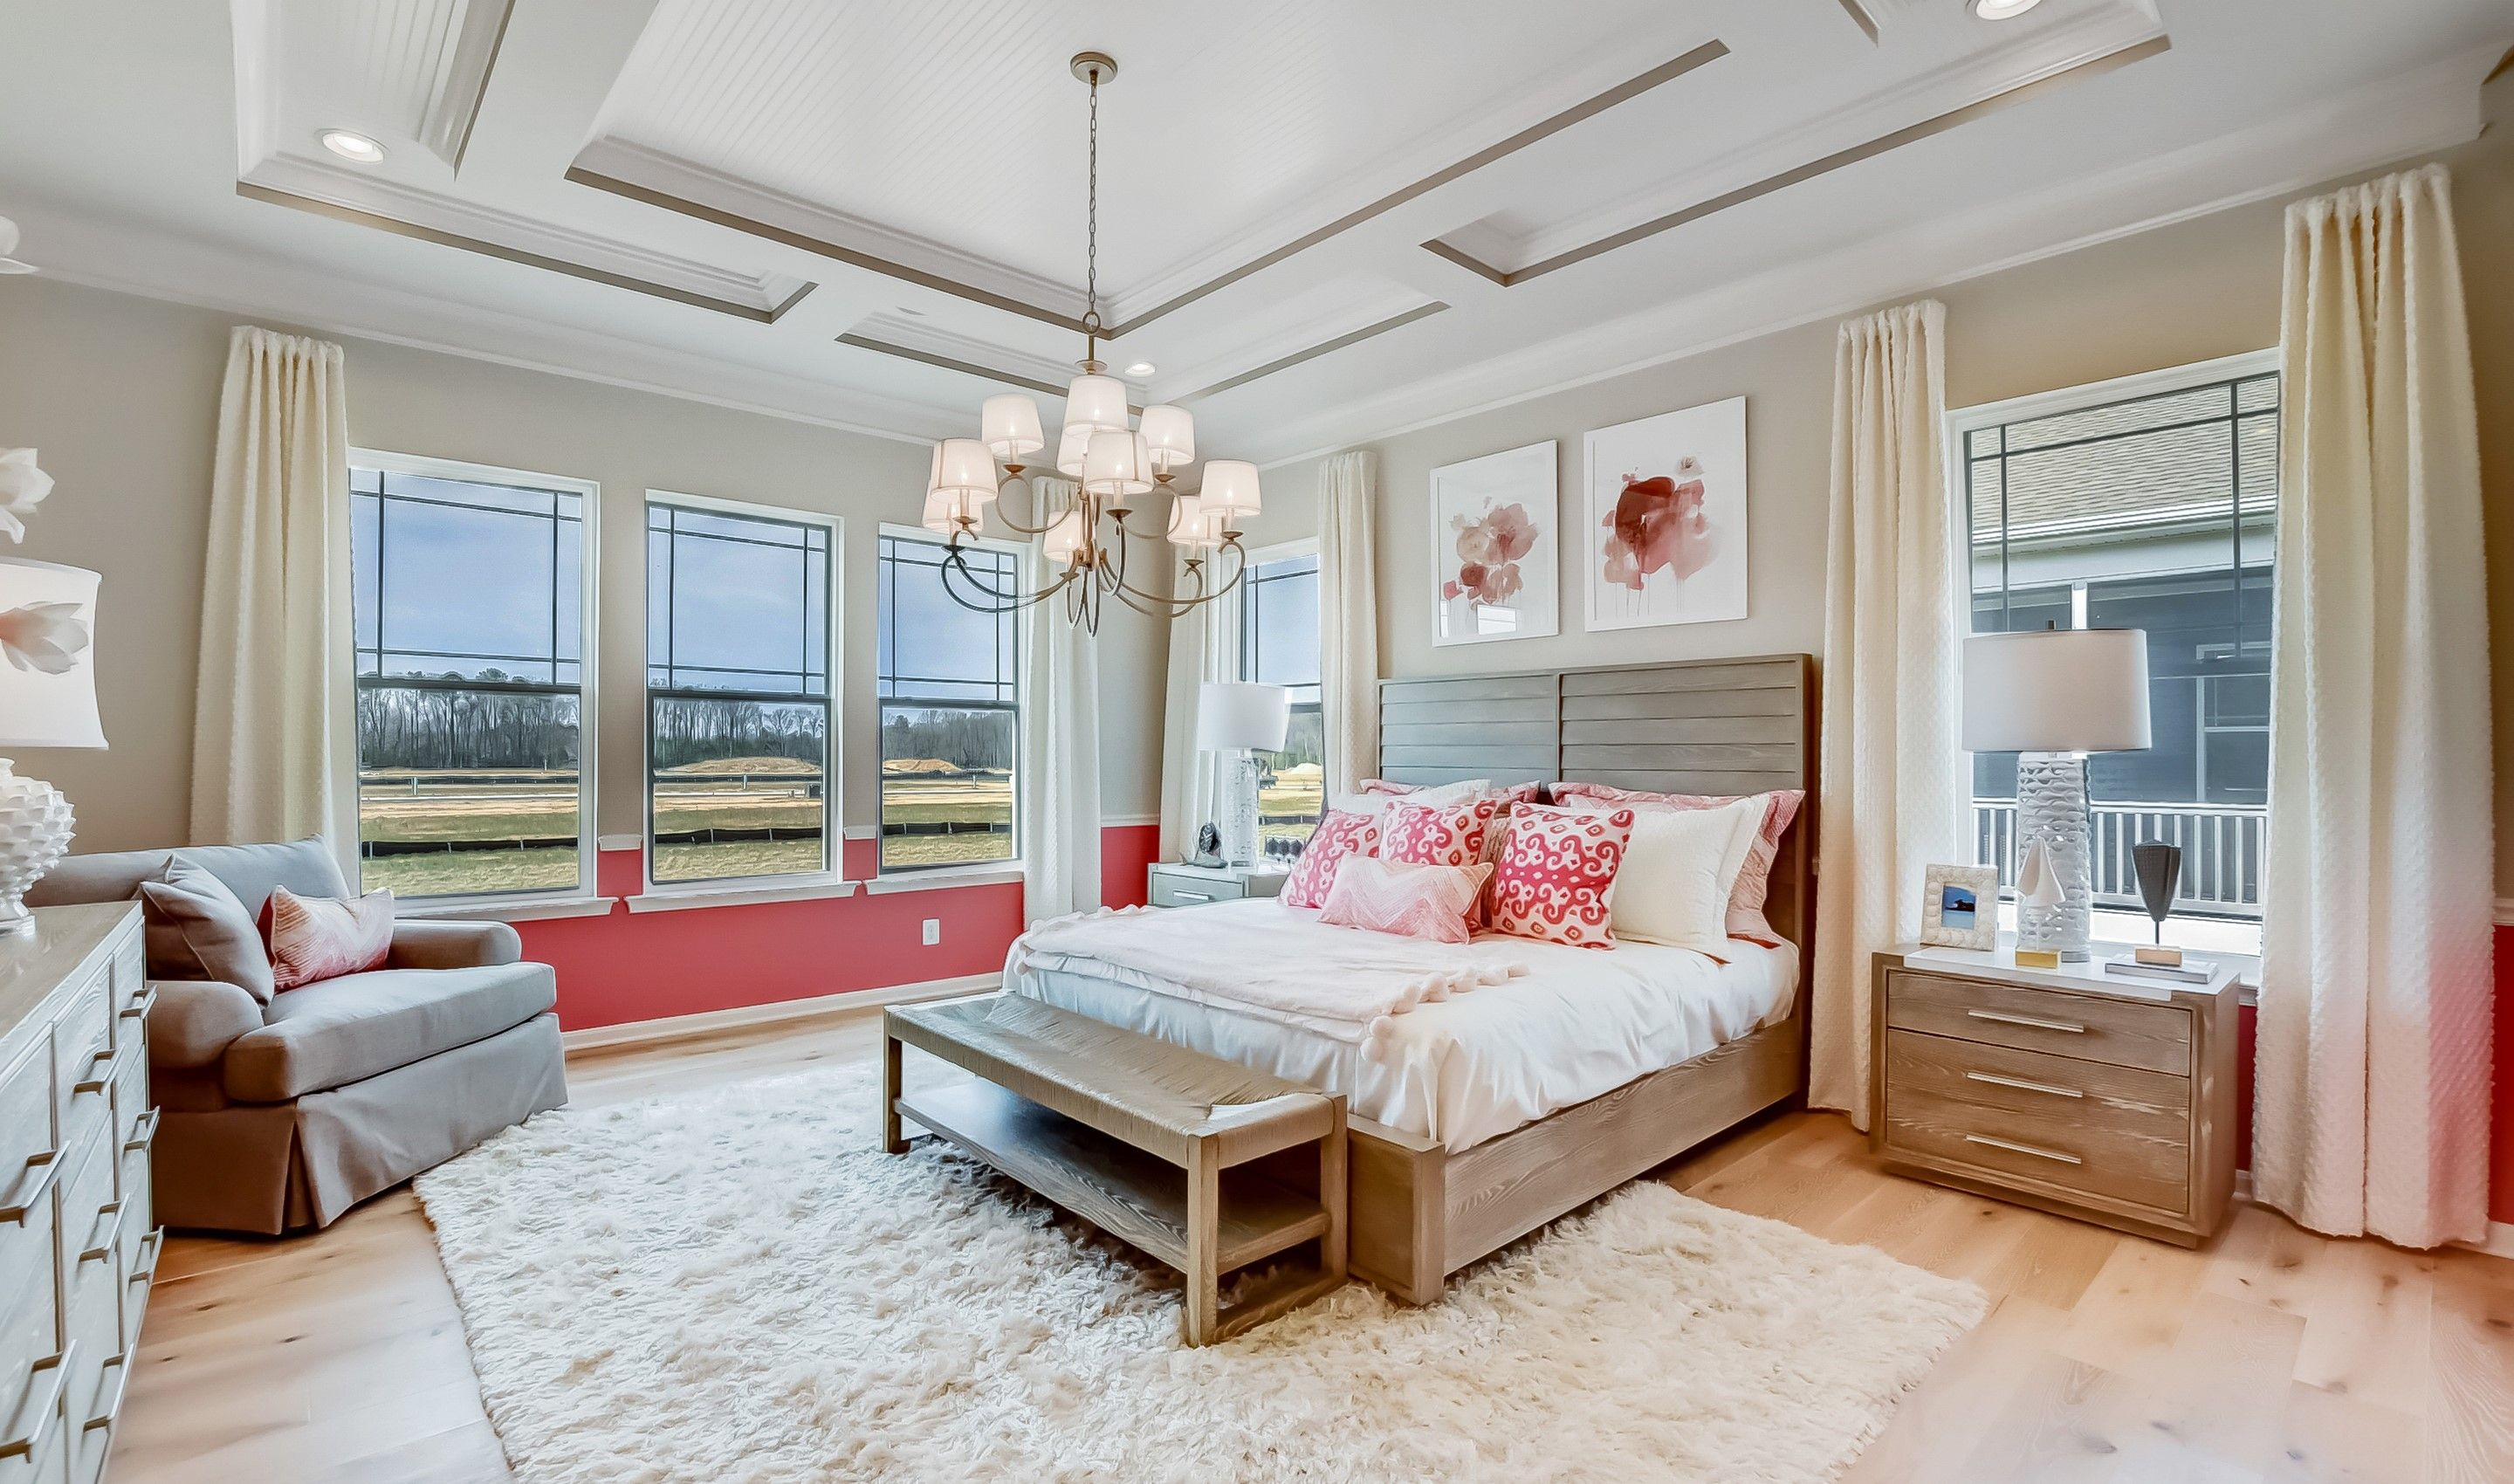 Bedroom featured in the Mont Blanc By K. Hovnanian's® Four Seasons in Sussex, DE